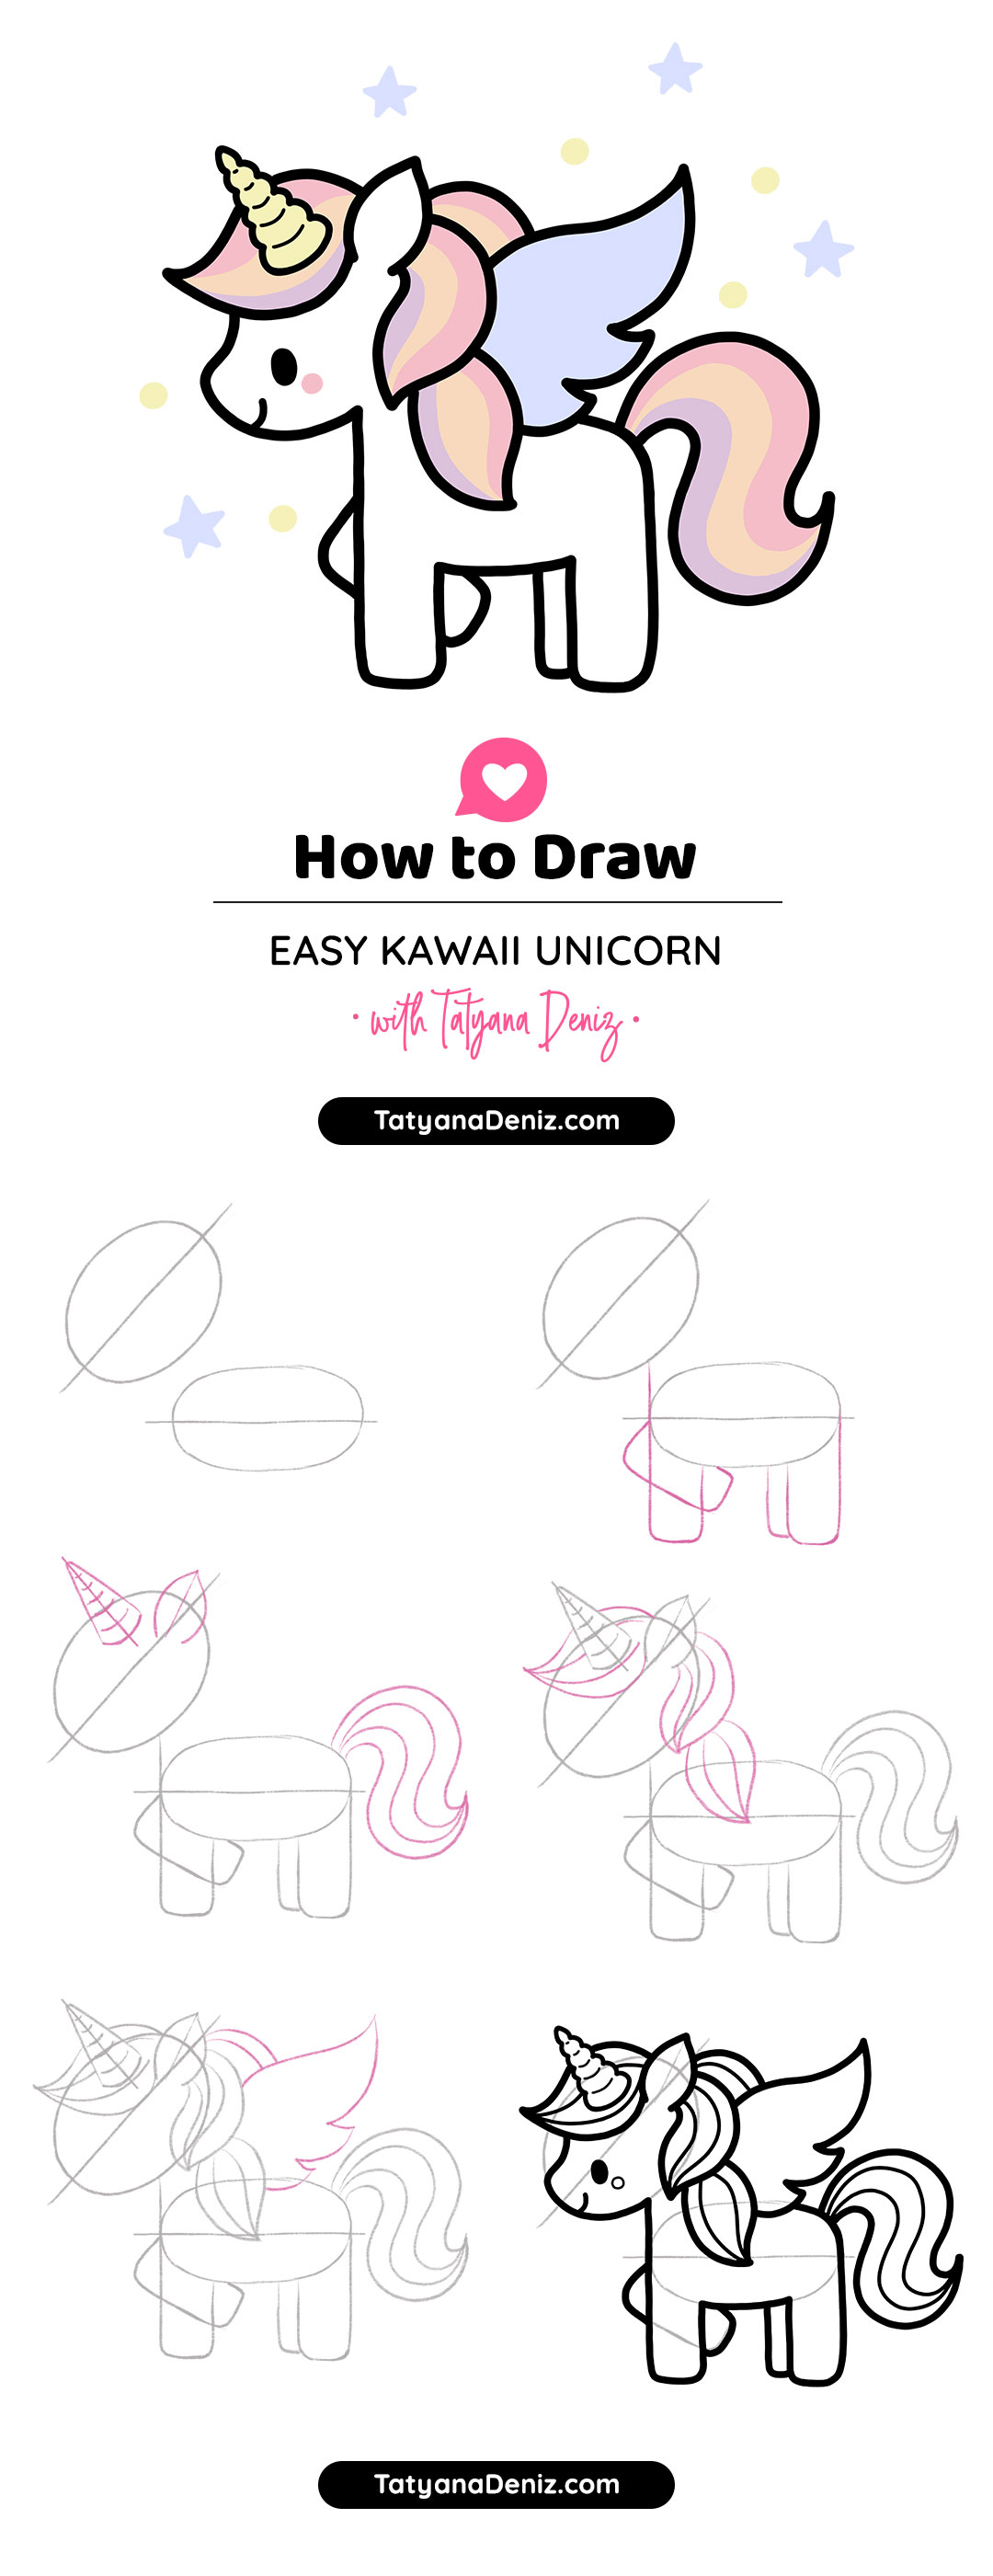 How to draw cute and easy kawaii unicorn step-by-step